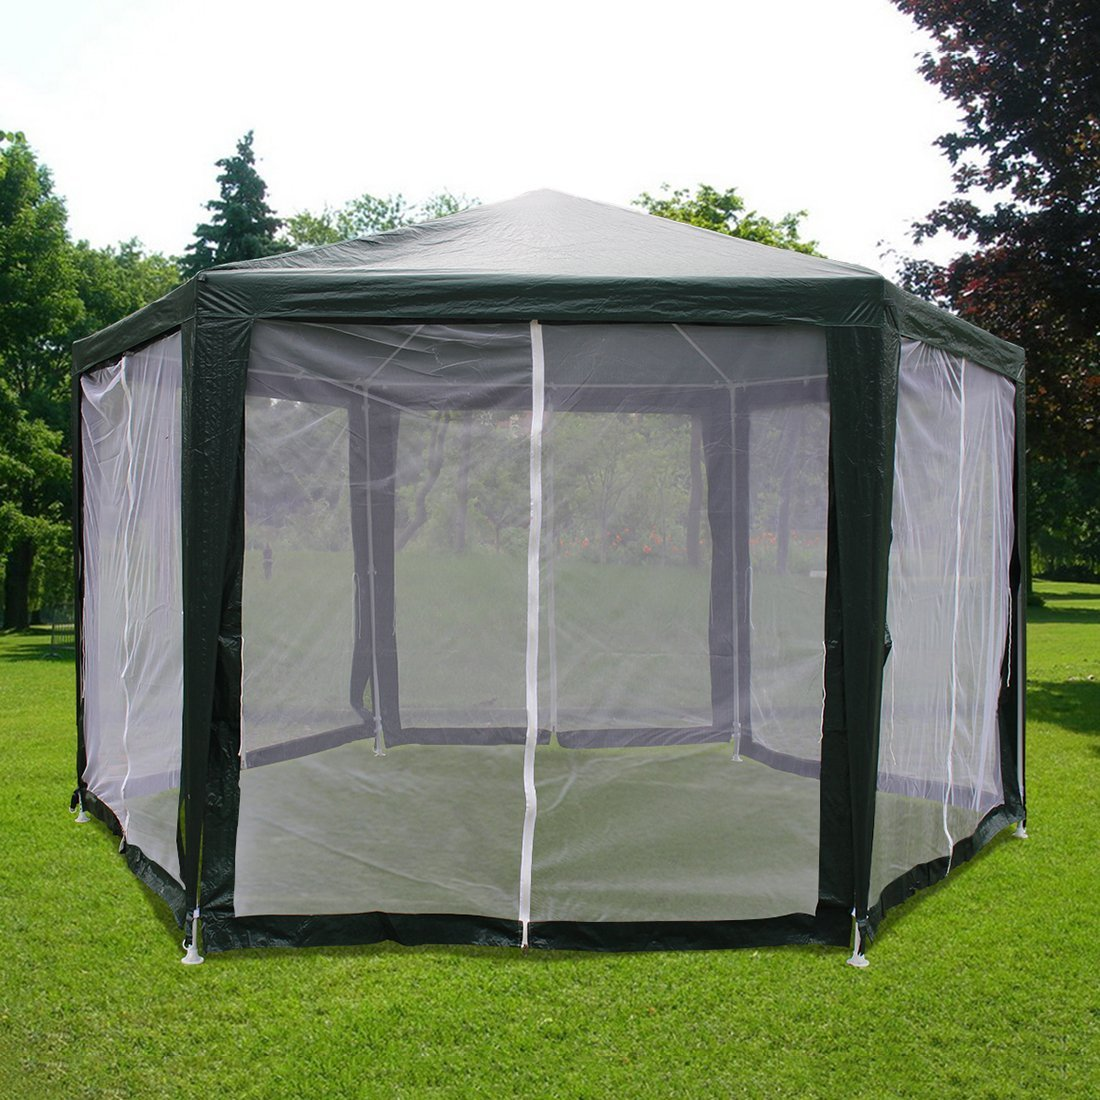 Quictent Outdoor Canopy Gazebo Party Wedding tent Screen House Sun Shade Shelter